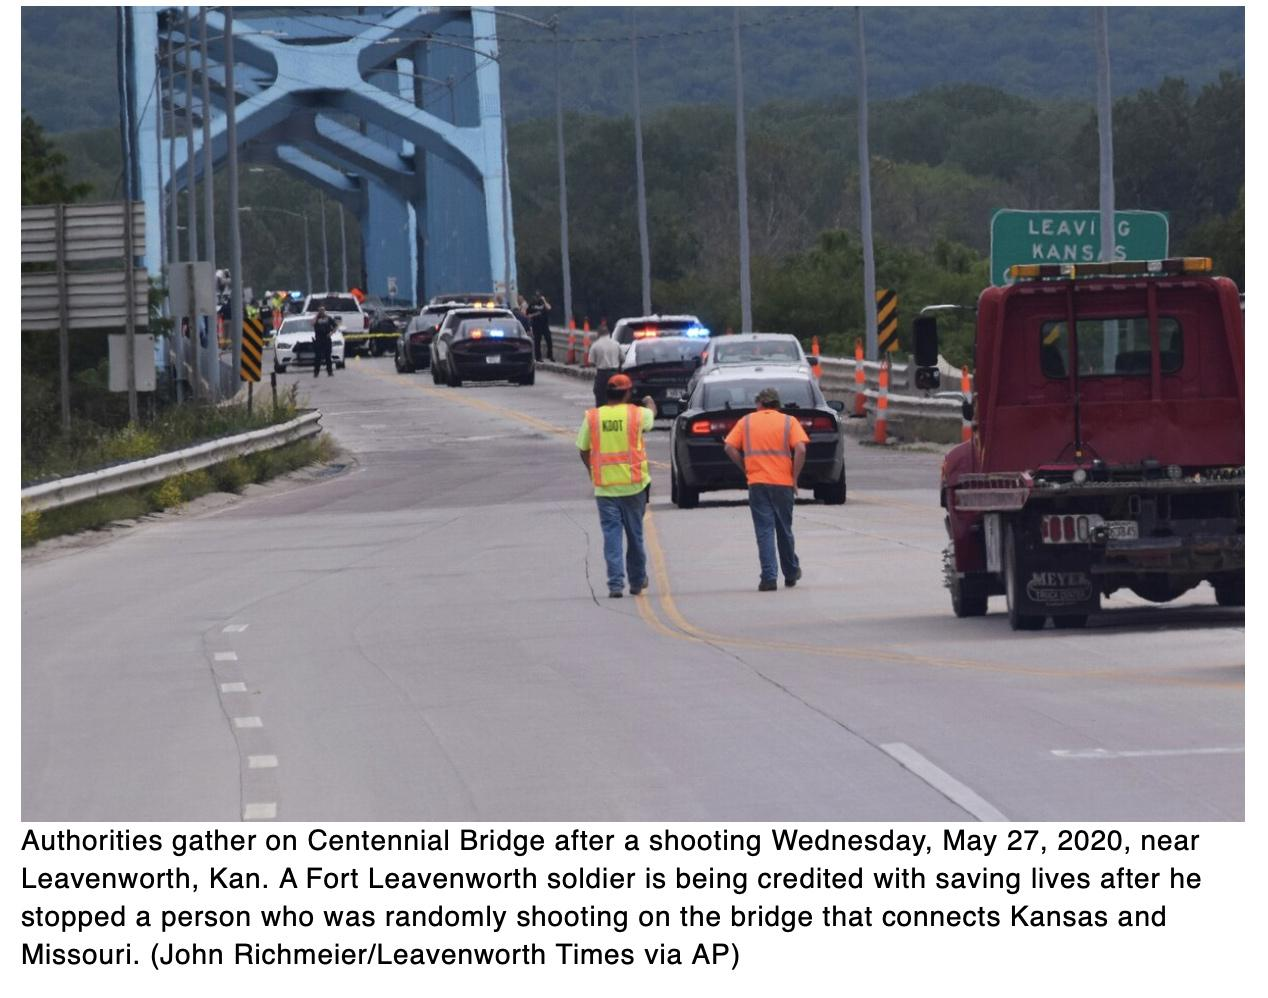 Police: Fort Leavenworth soldier saved lives by stopping shooter on bridge